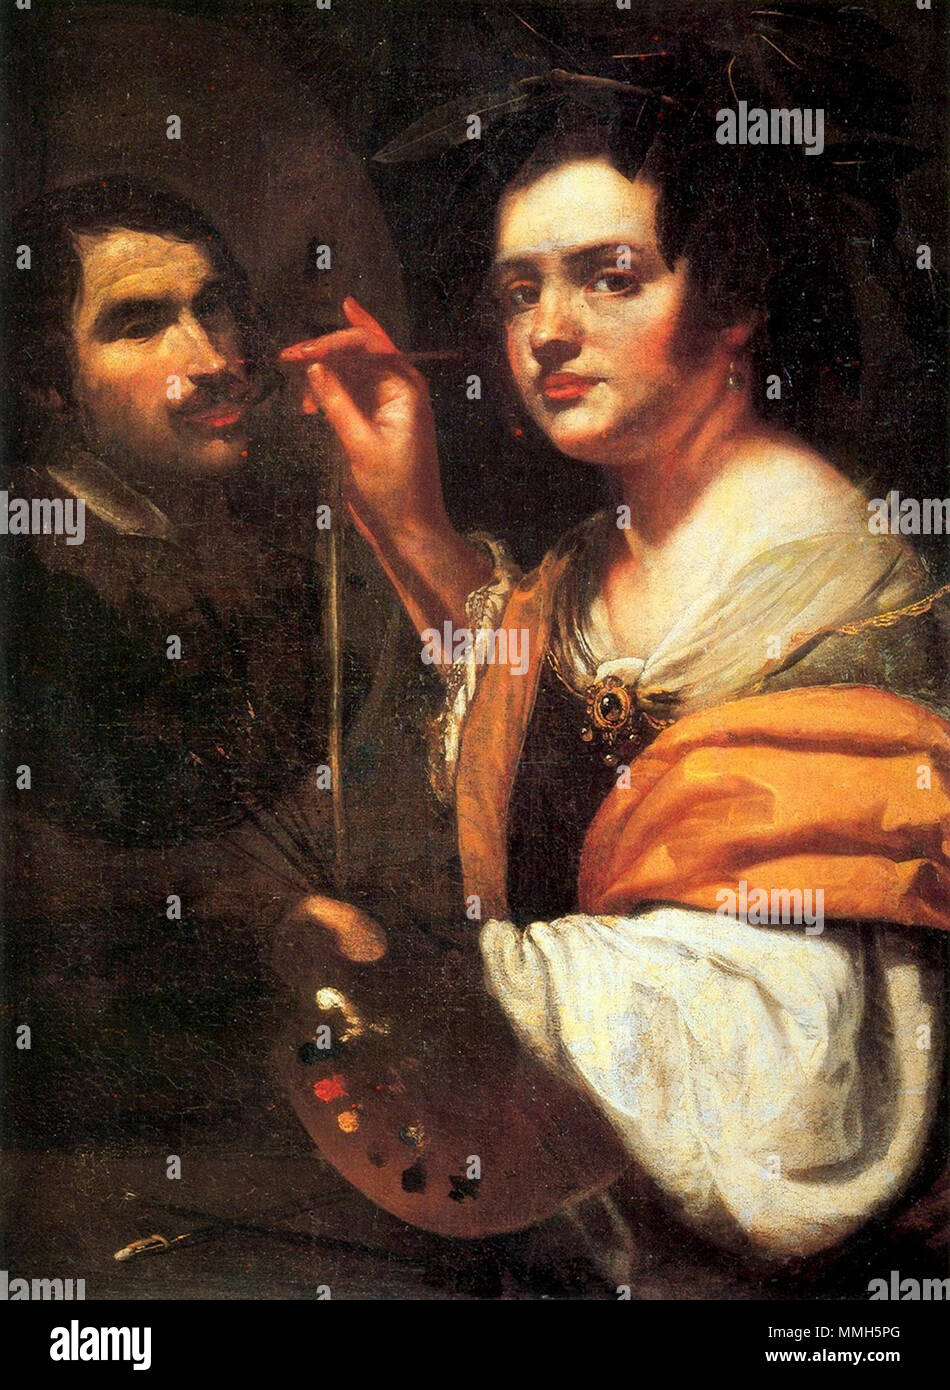 Della Pittura On Painting Gentileschi Allegory Stock Photos Gentileschi Allegory Stock